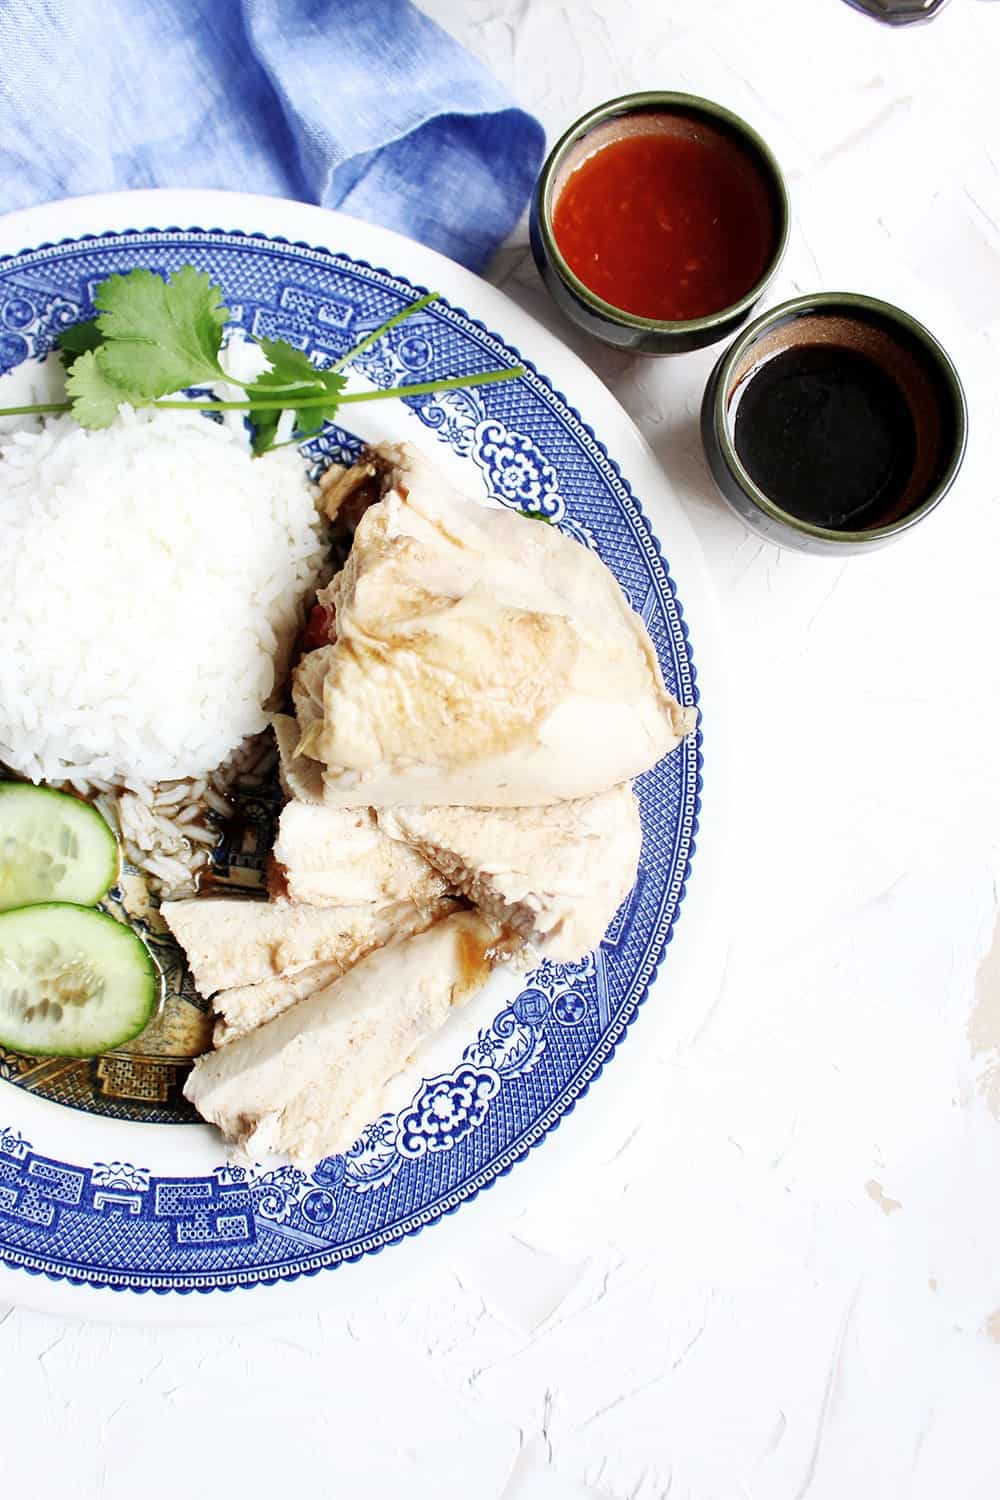 Hainanese Chicken Rice